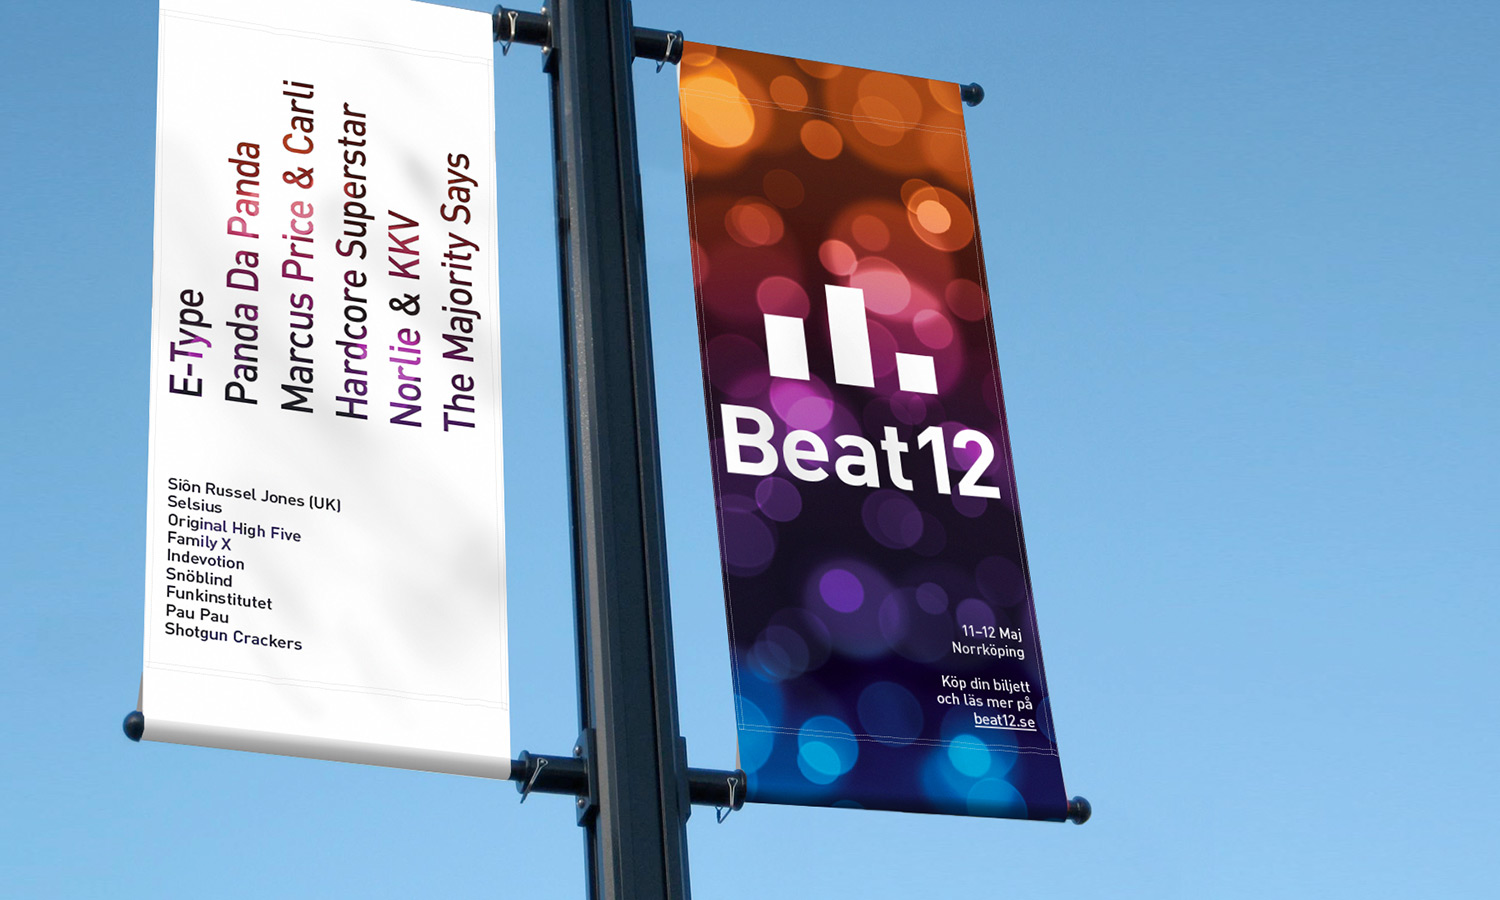 BEAT'12 by Viktor Lanneld